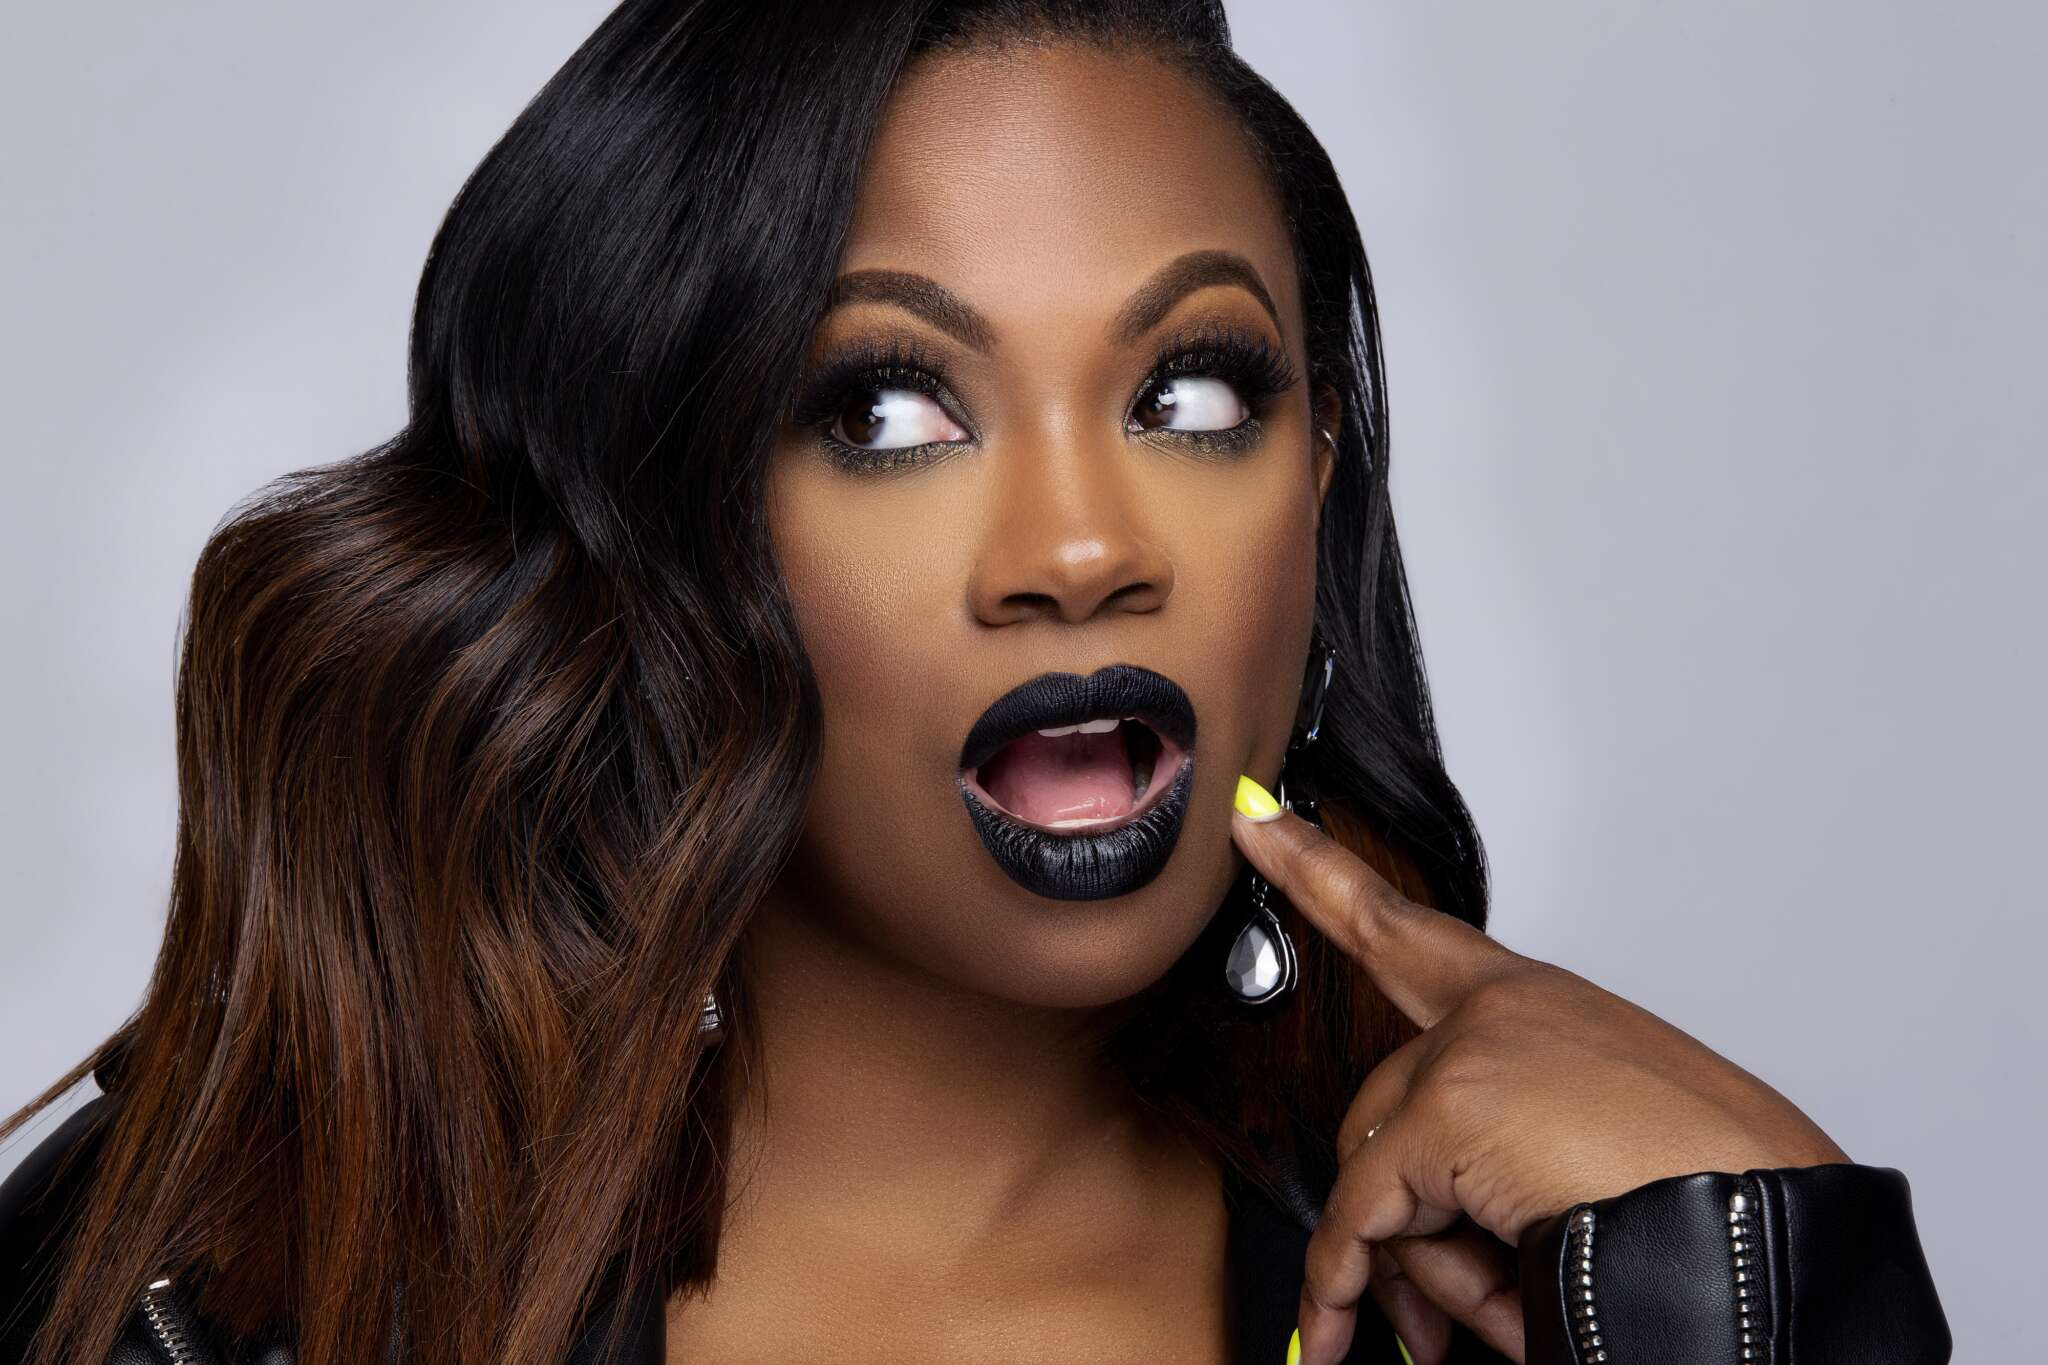 kandi-burruss-has-some-great-bedroom-tricks-for-her-fans-and-followers-see-her-video